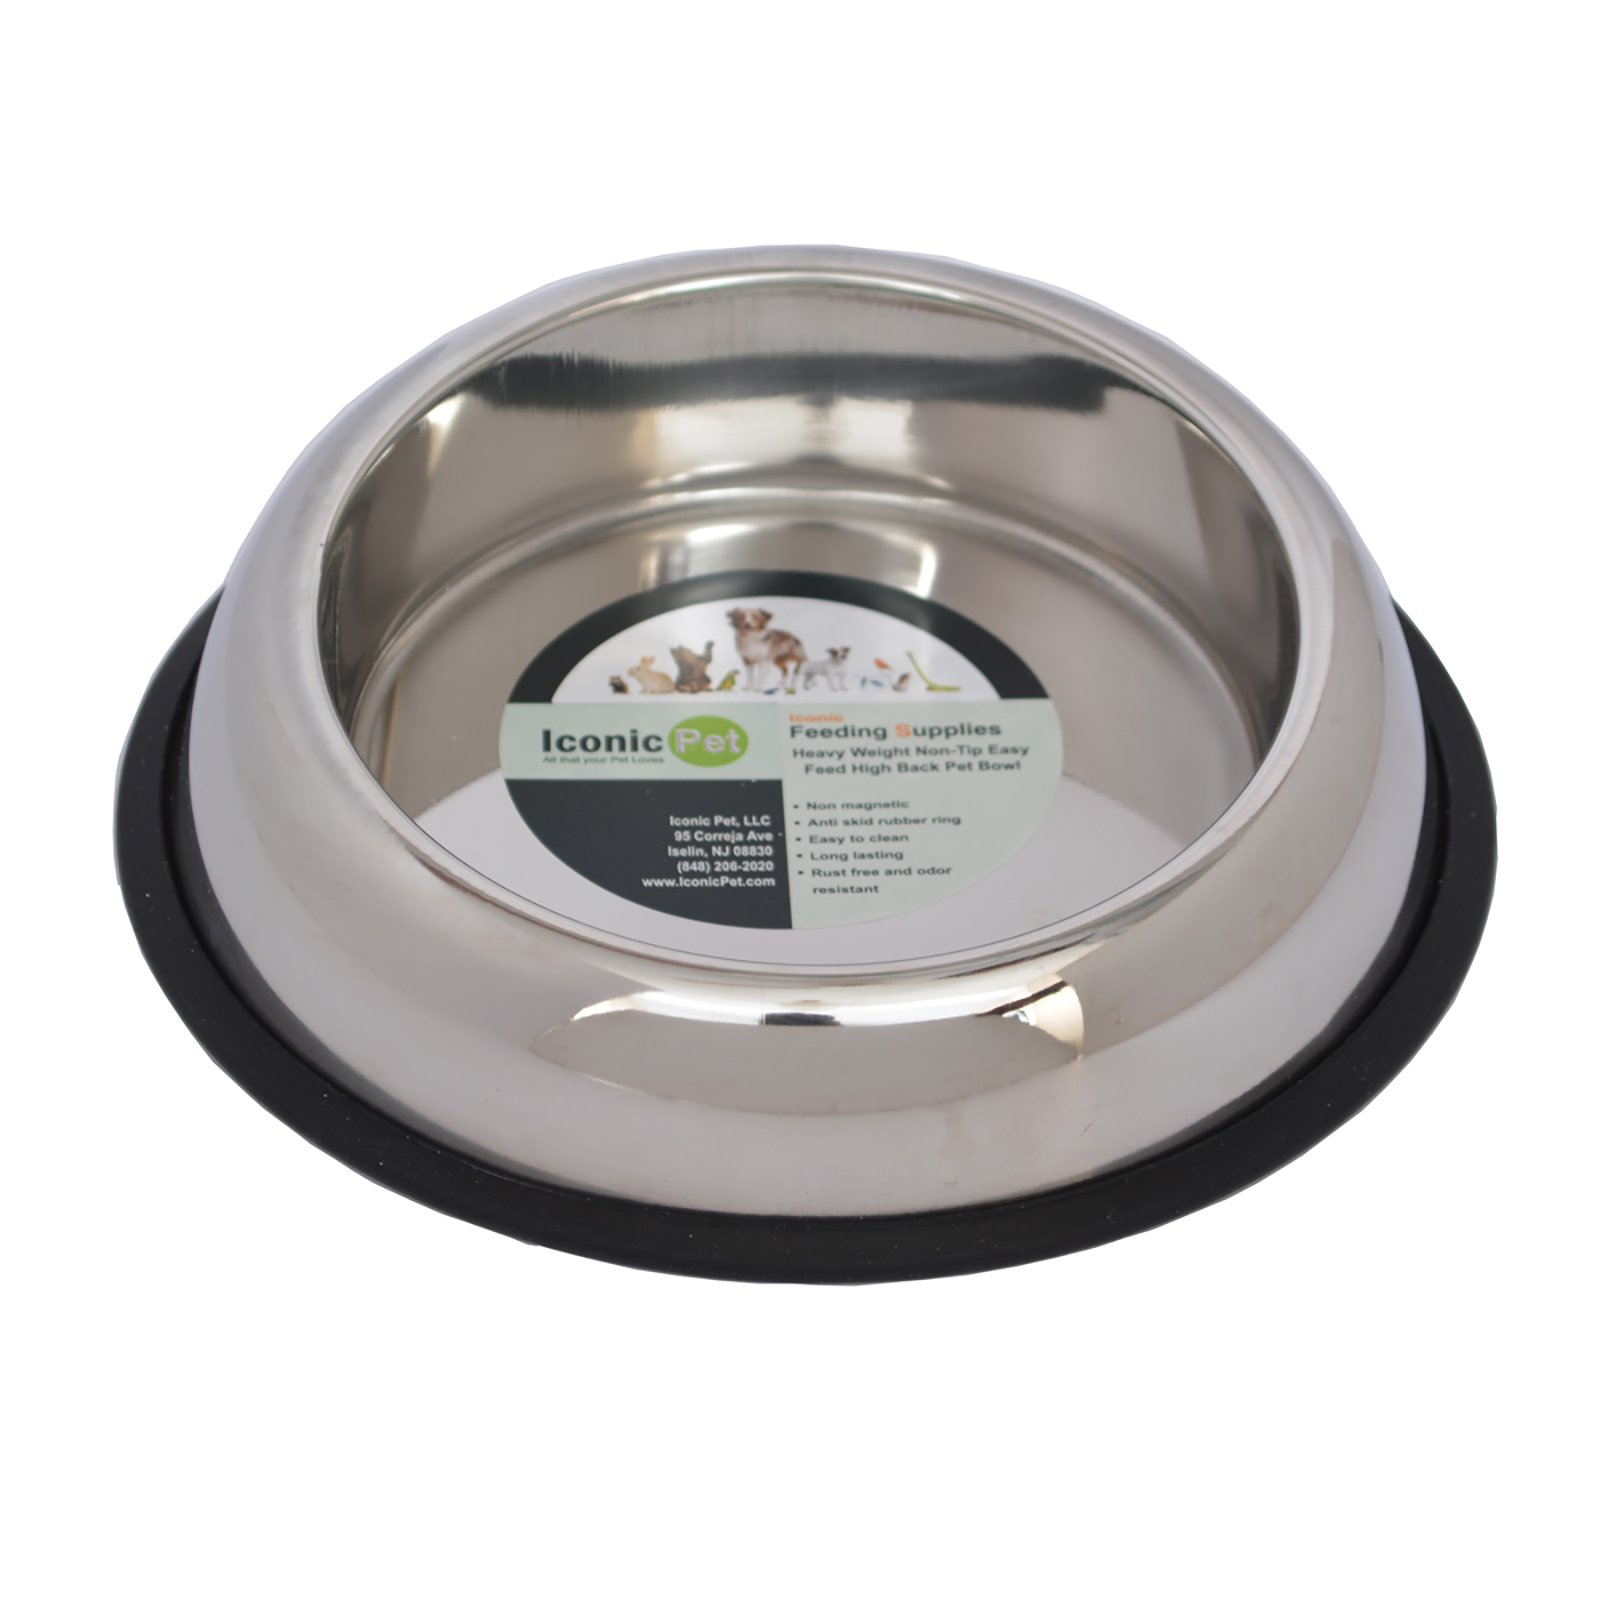 Iconic Pet Heavy Weight Non-Skid Easy Feed High Back Pet Bowl For Dog or Cat, 32 Oz, 4 Cup